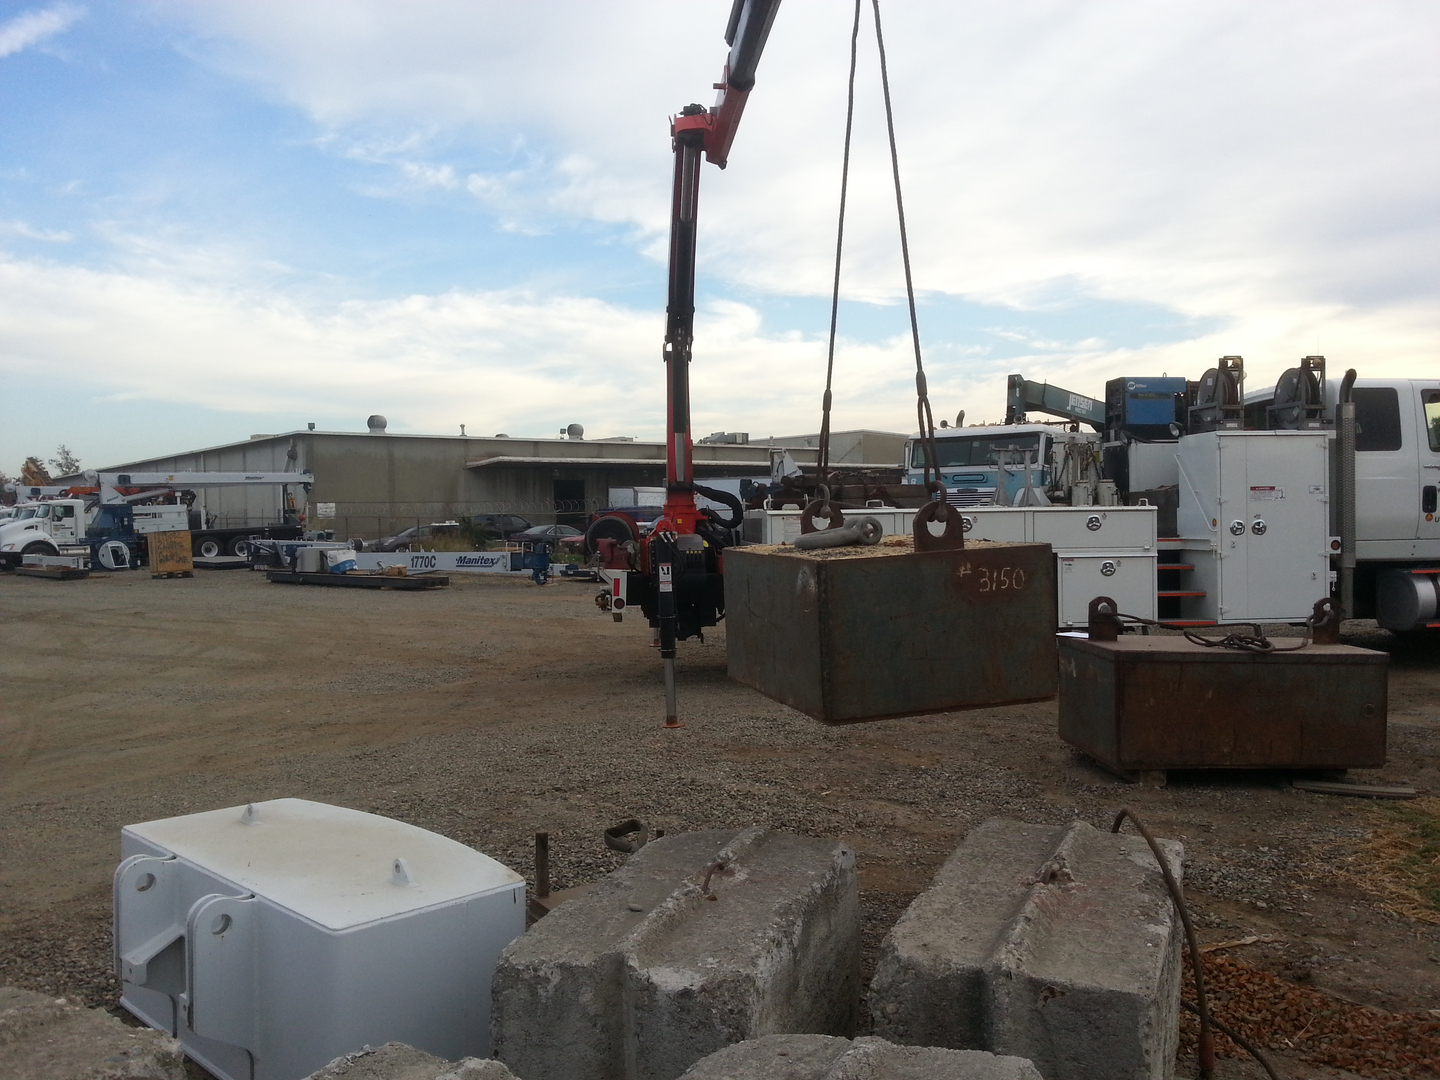 Nccco Certified Crane Training And inspections On All Types